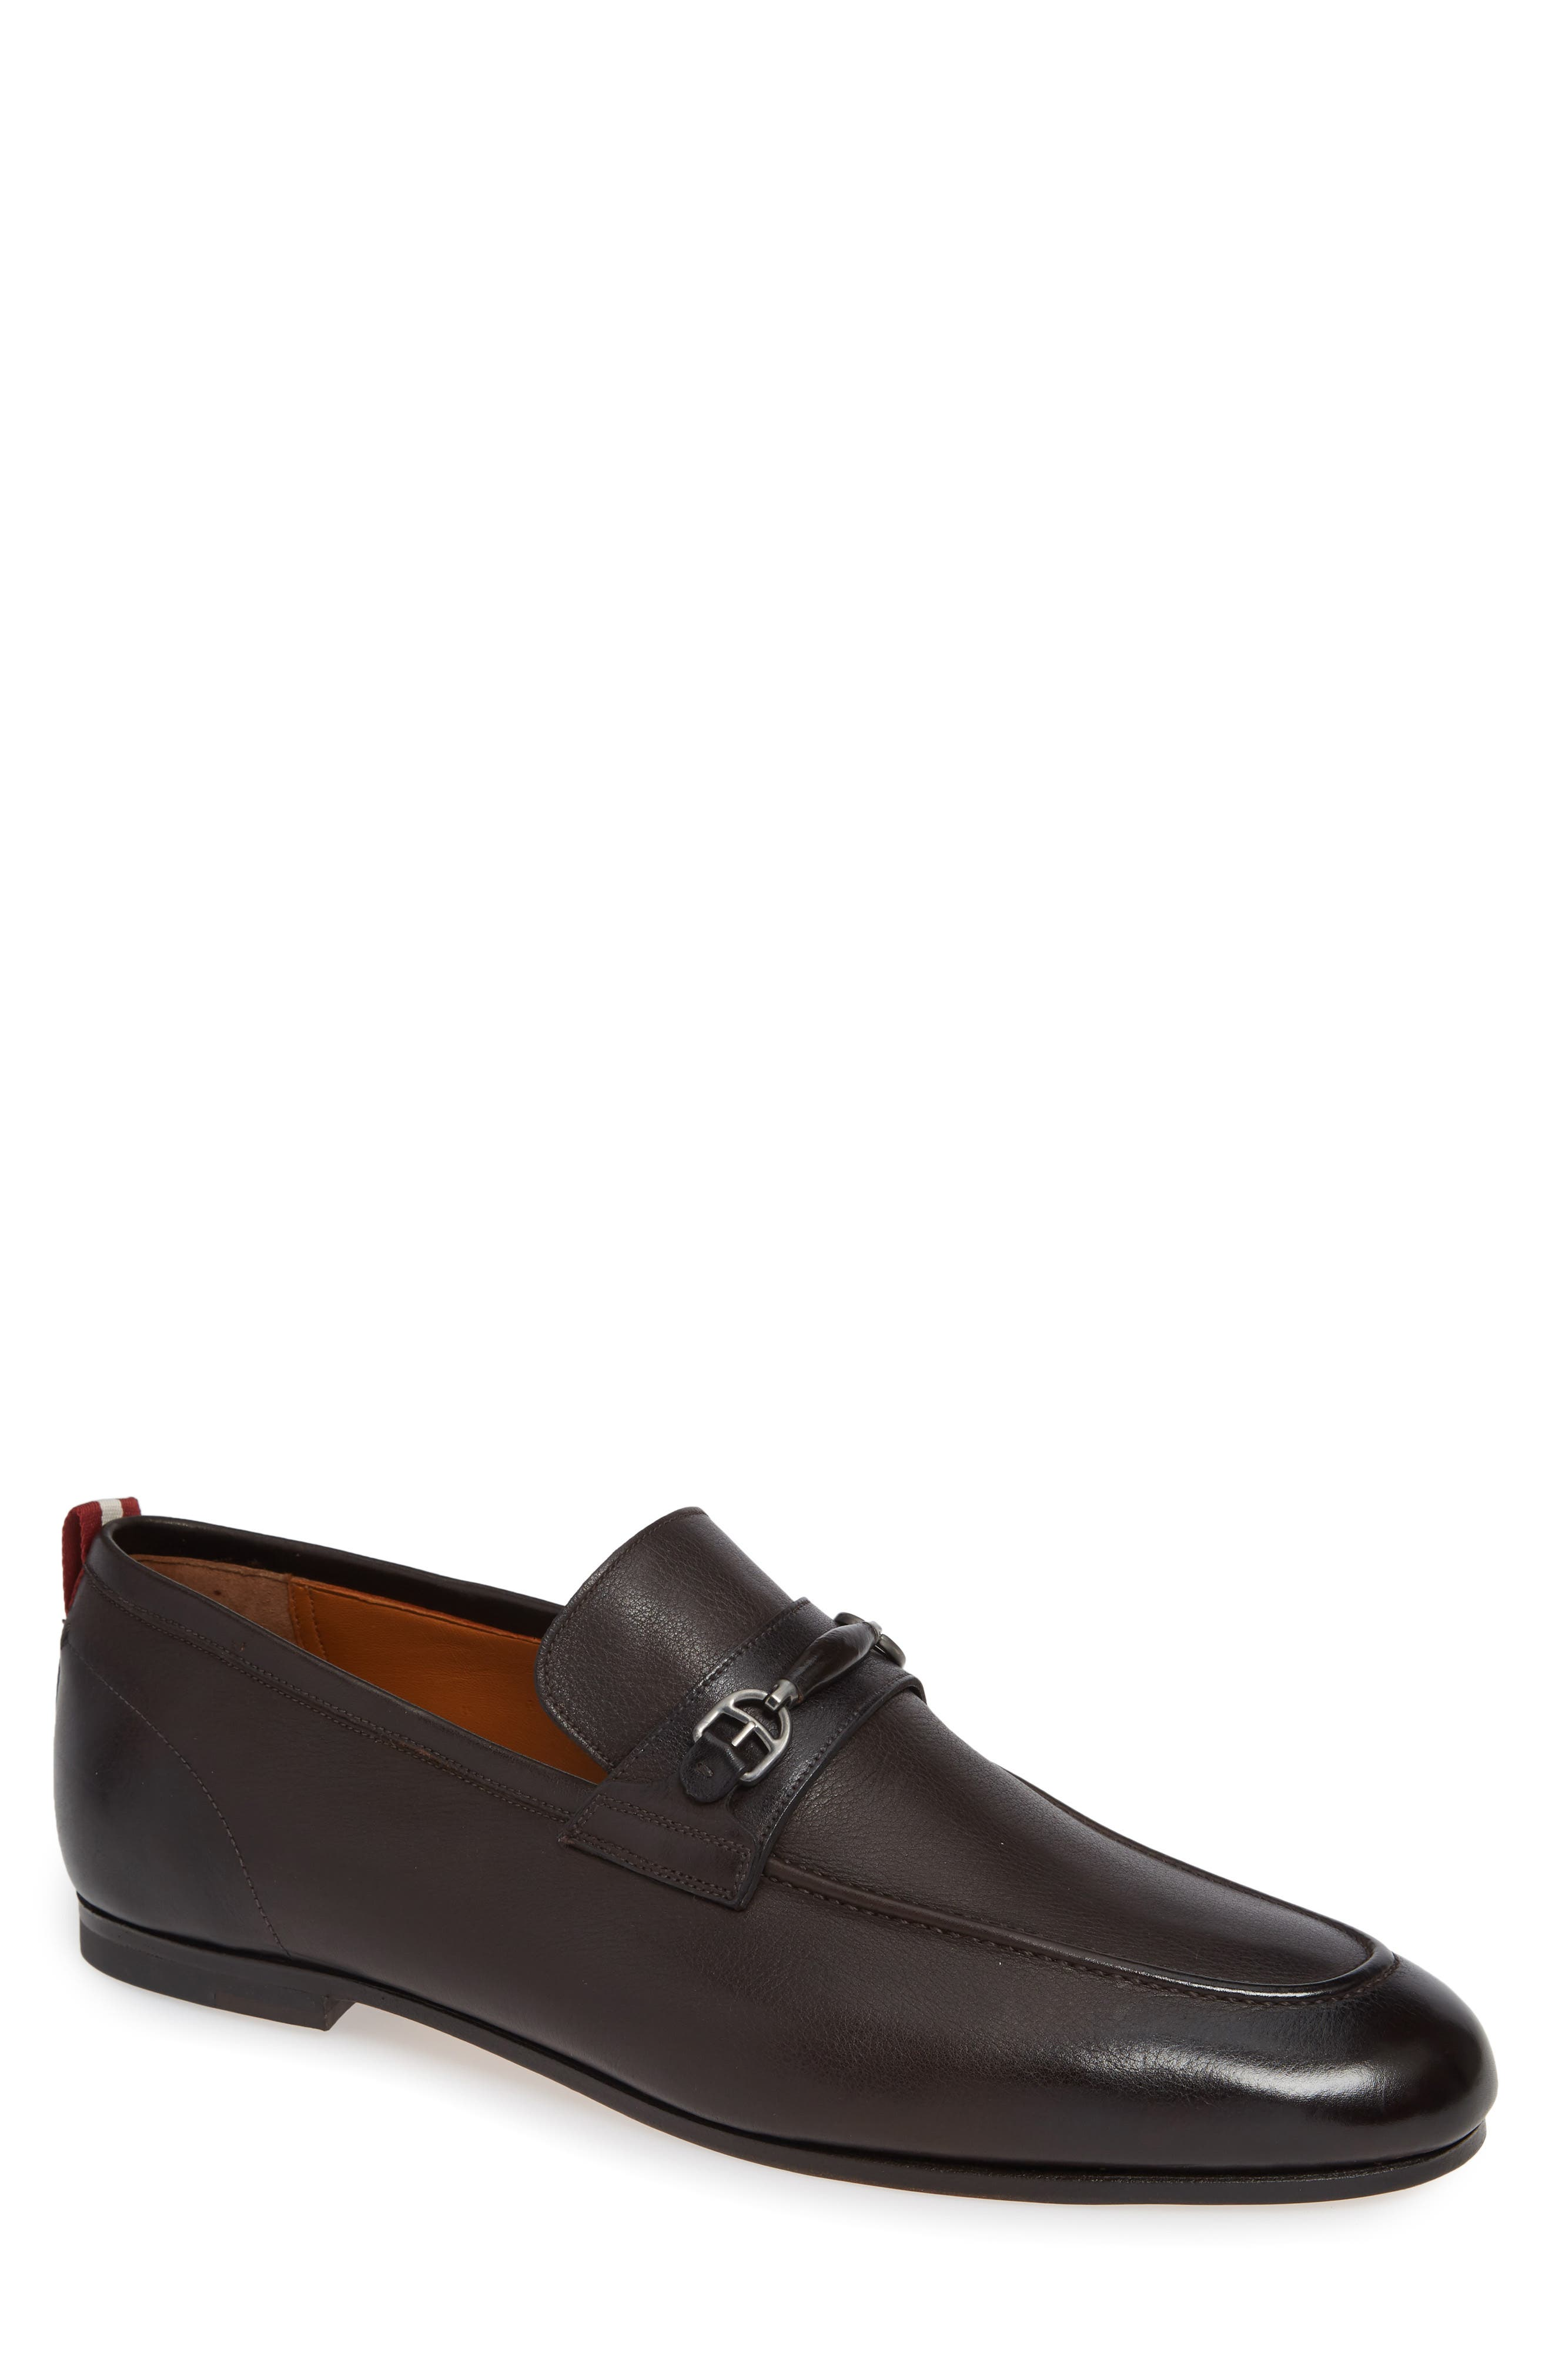 Plintor Loafer,                             Main thumbnail 1, color,                             COFFEE BROWN